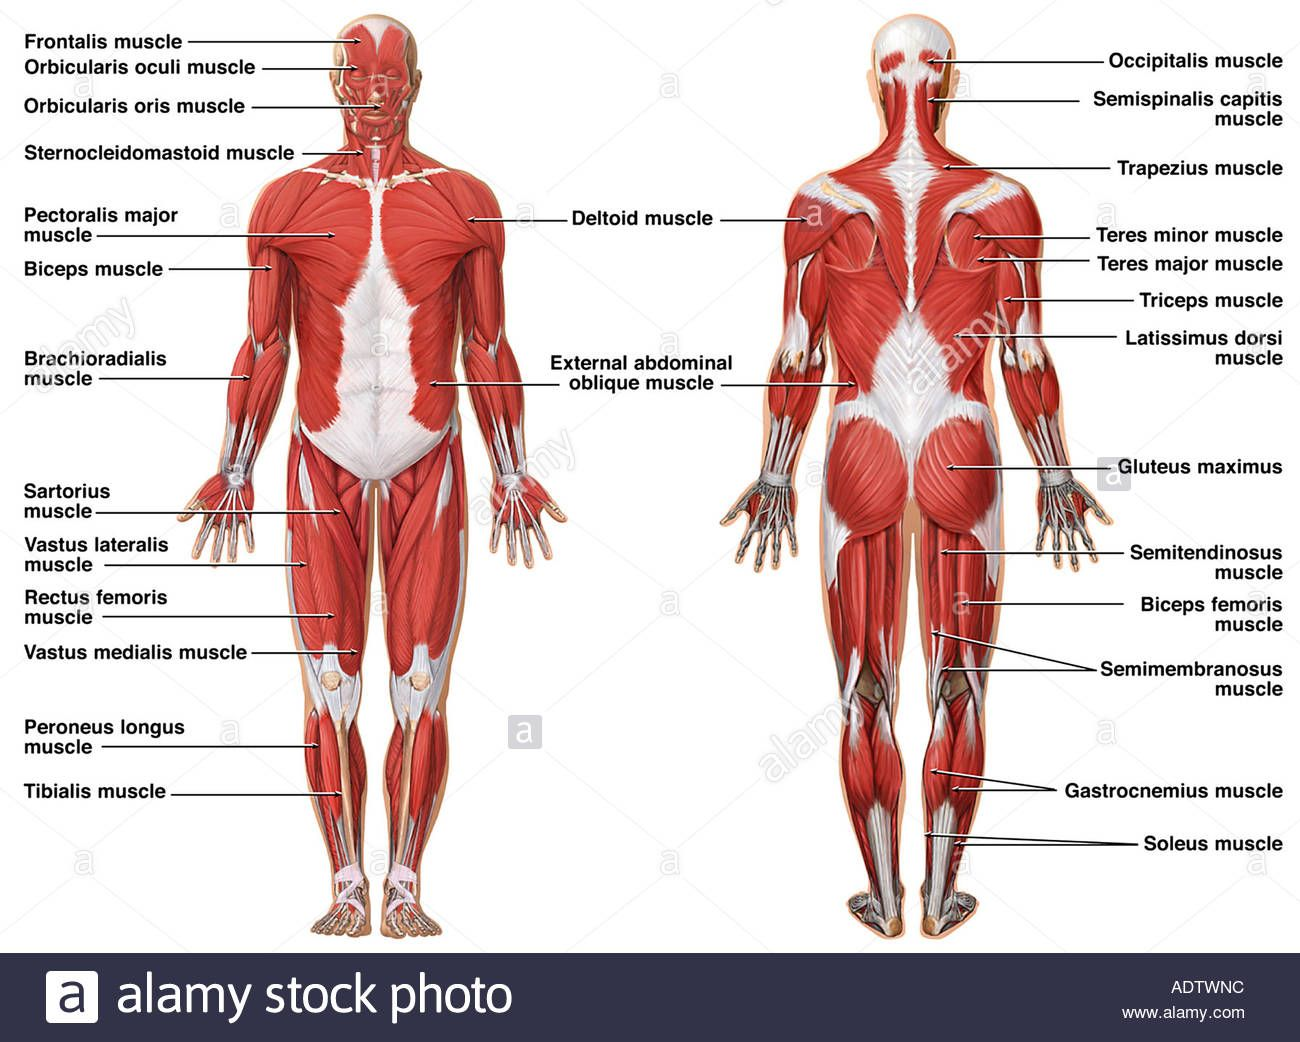 Muscular System Pictures Human Anatomy Drawing Pinterest Human